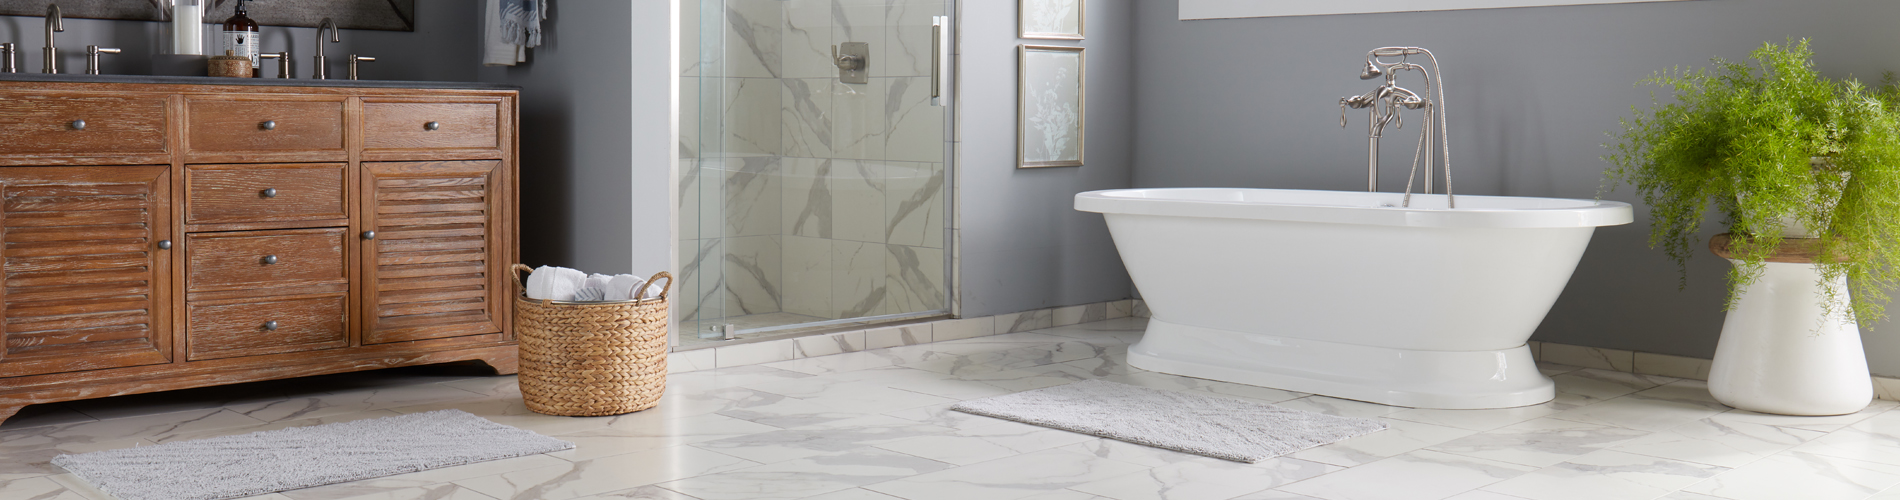 bel terra tile flooring in bathroom